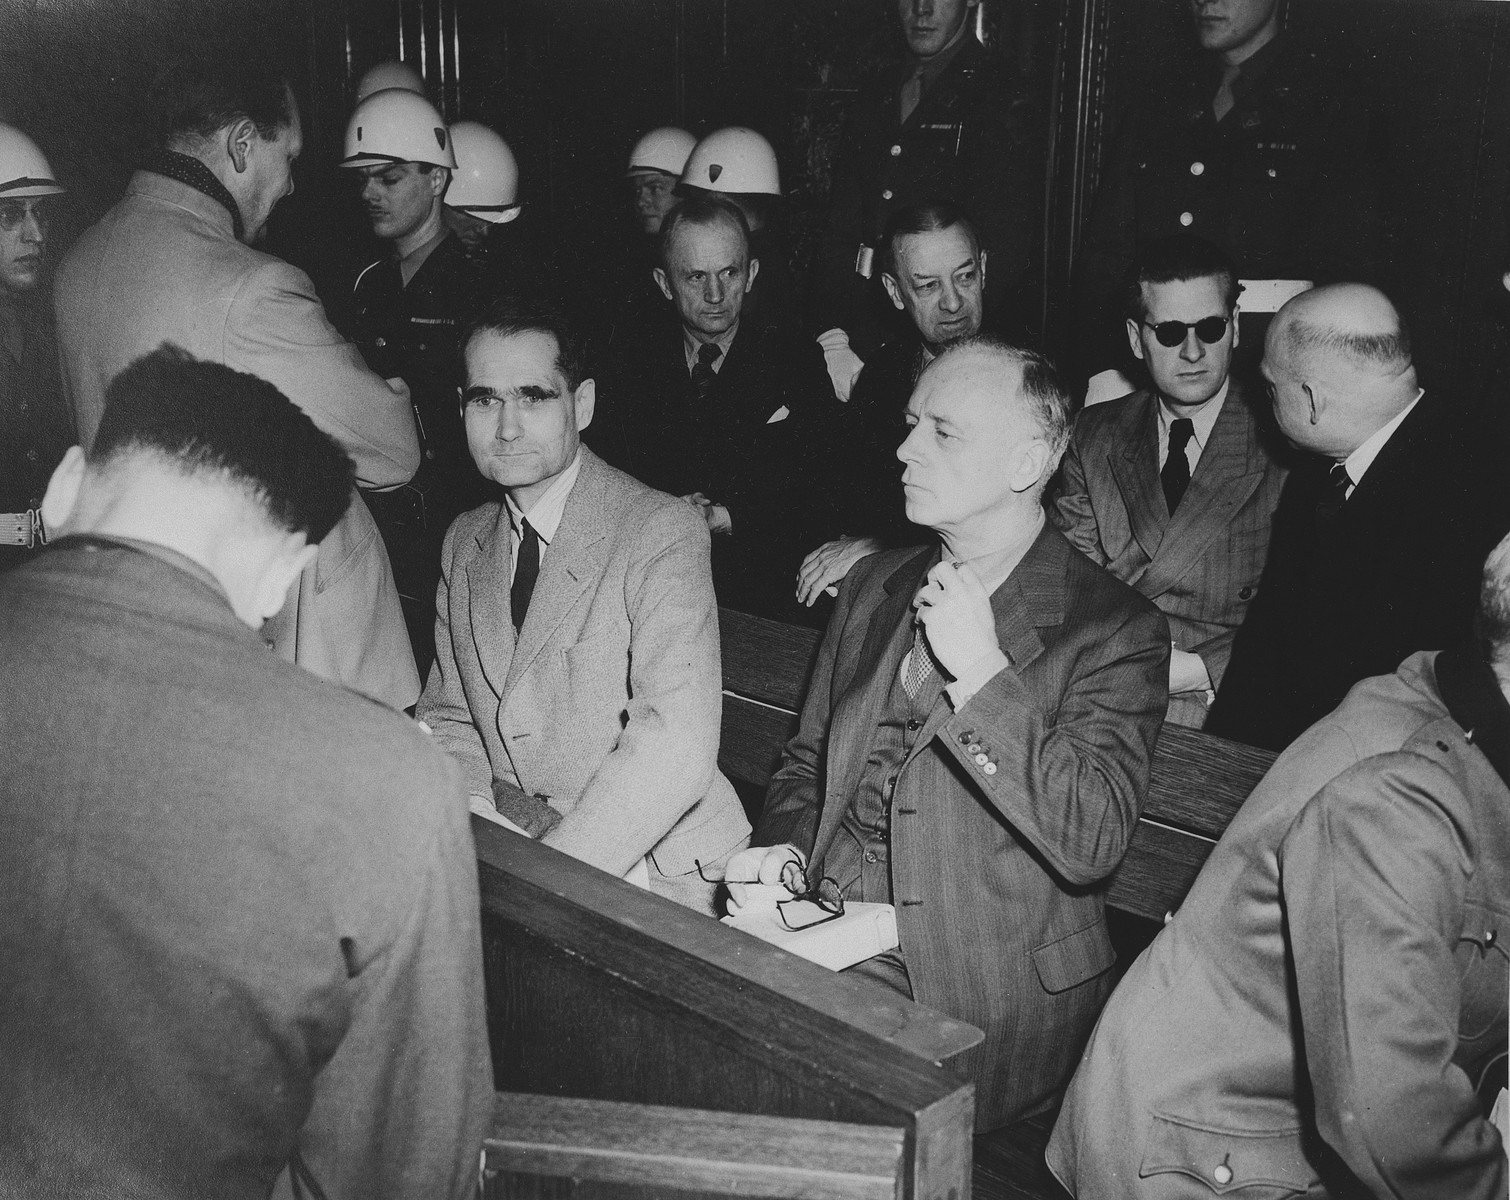 The defendants in the dock at the International Military Tribunal trial of war criminals at Nuremberg.  Pictured in the front row from left to right are: Hermann Goering (back turned), Rudolf Hess and Joachim von Ribbentrop.  Pictured in the back row are Karl Doenitz and Erich Raeder (both behind Hess).